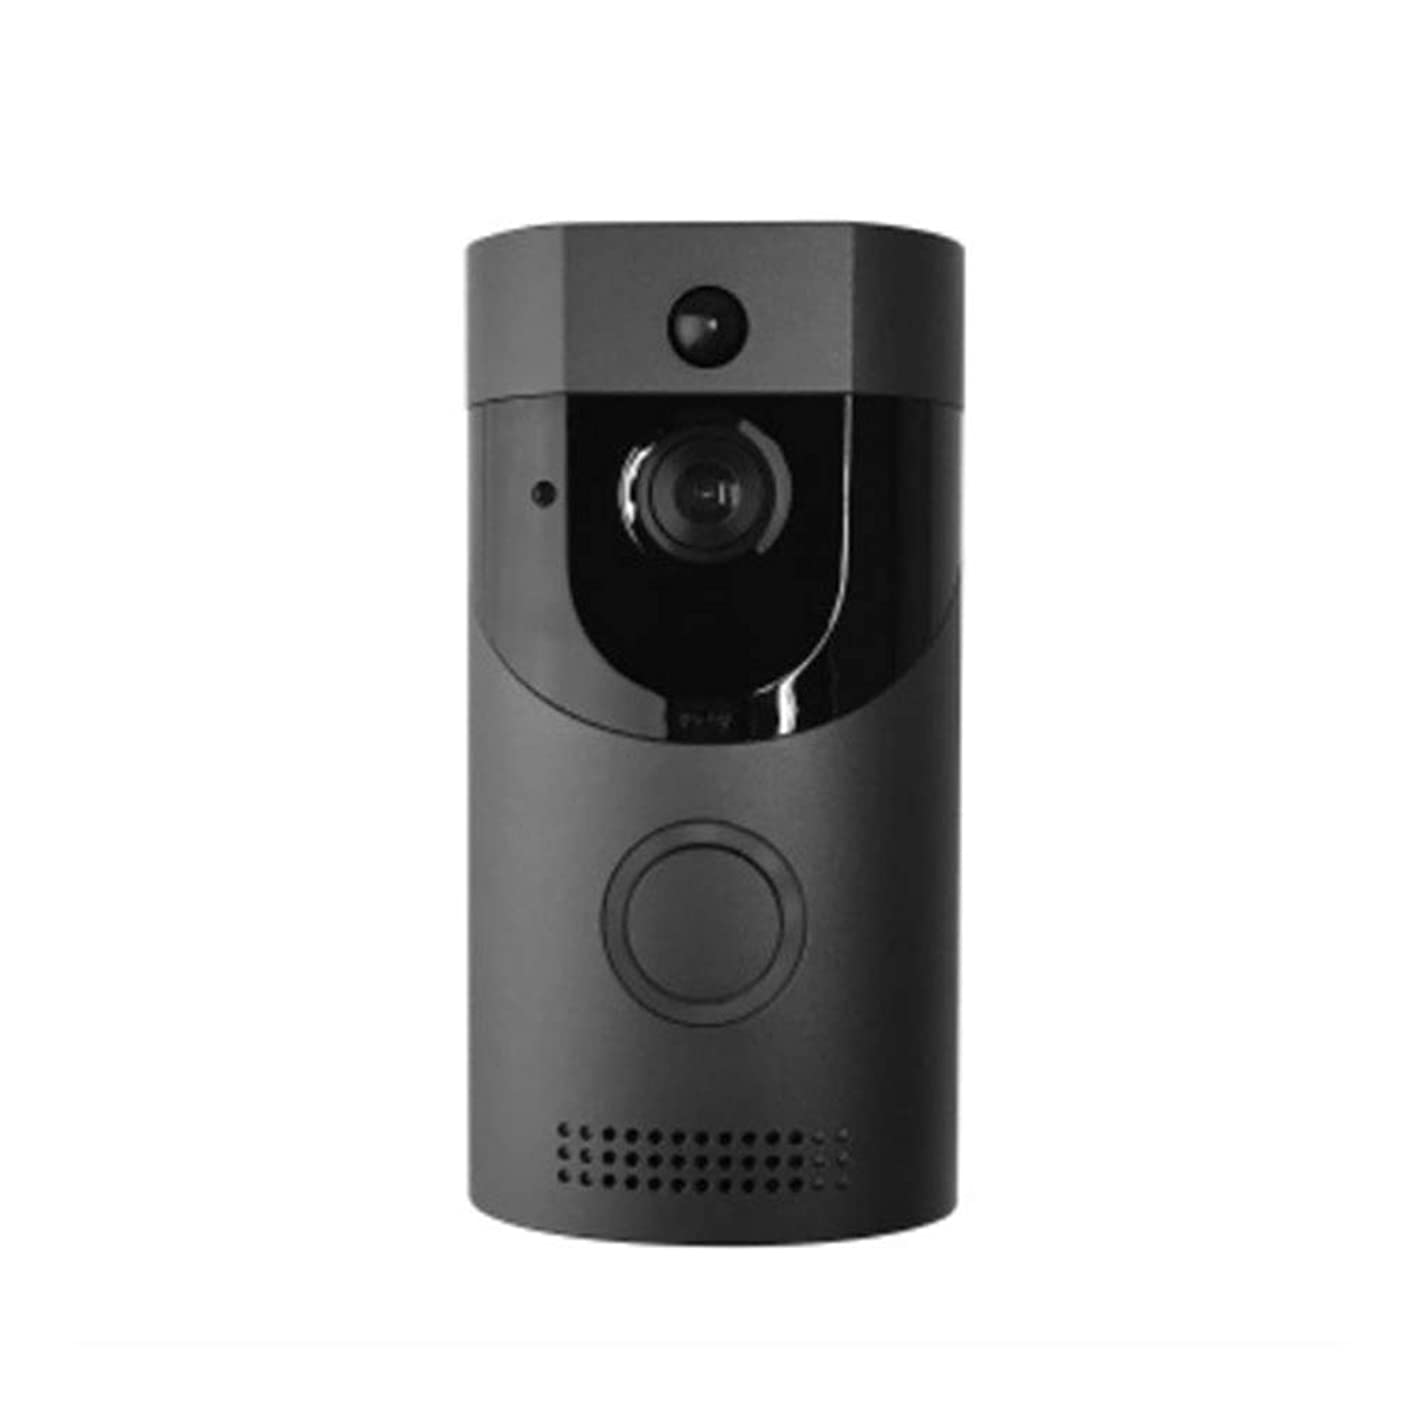 ZHANGZ0 Video Doorbell Mobile Remote Wireless Video Intercom WiFi Home HD Night Vision Monitoring Suitable for Families Hotels,Black